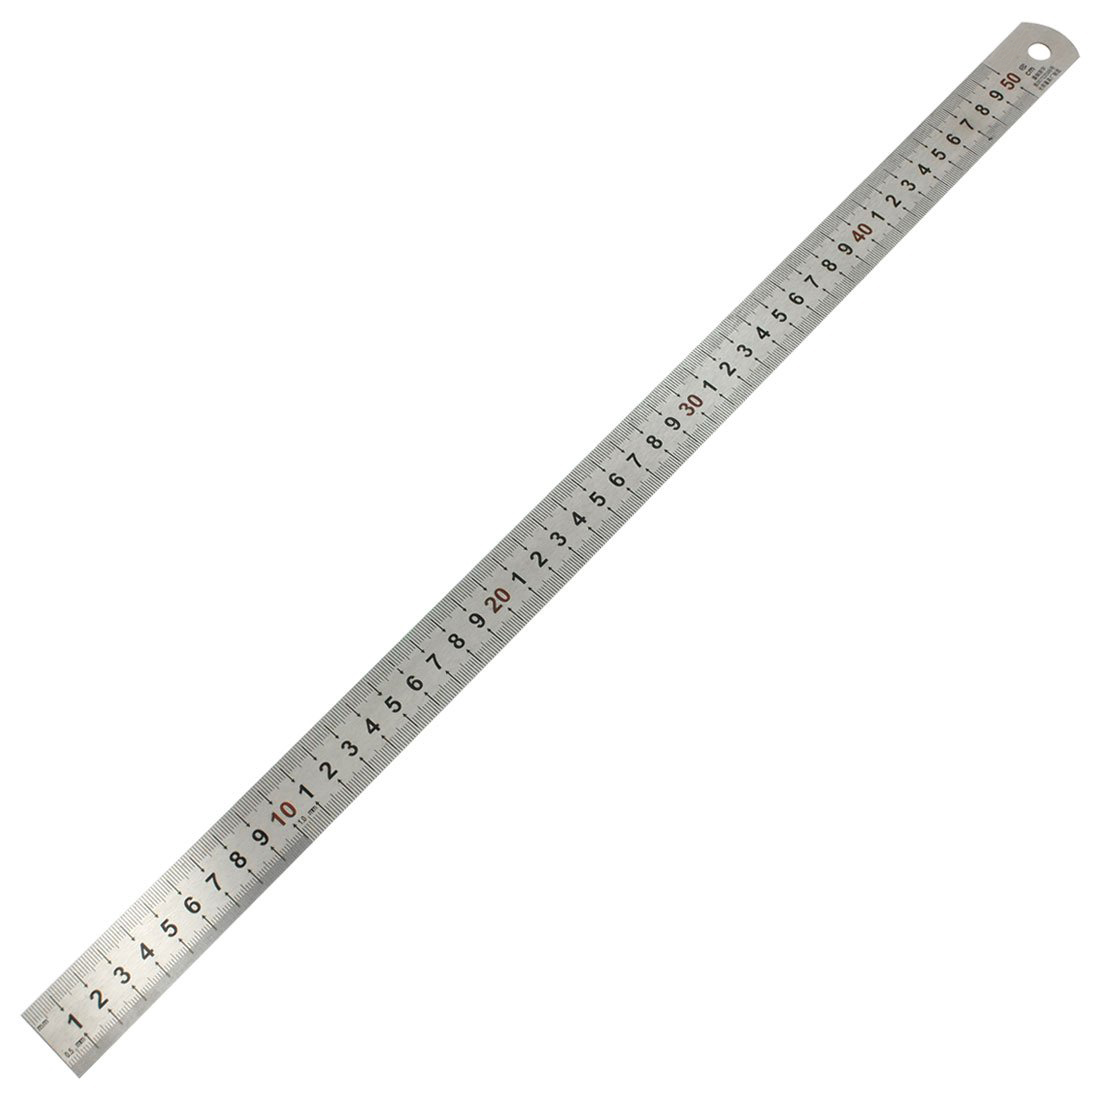 10pack (Double Side Scale Stainless Steel Straight Ruler Measuring Tool 50cm double side scale stainless steel straight ruler measuring tool 50cm